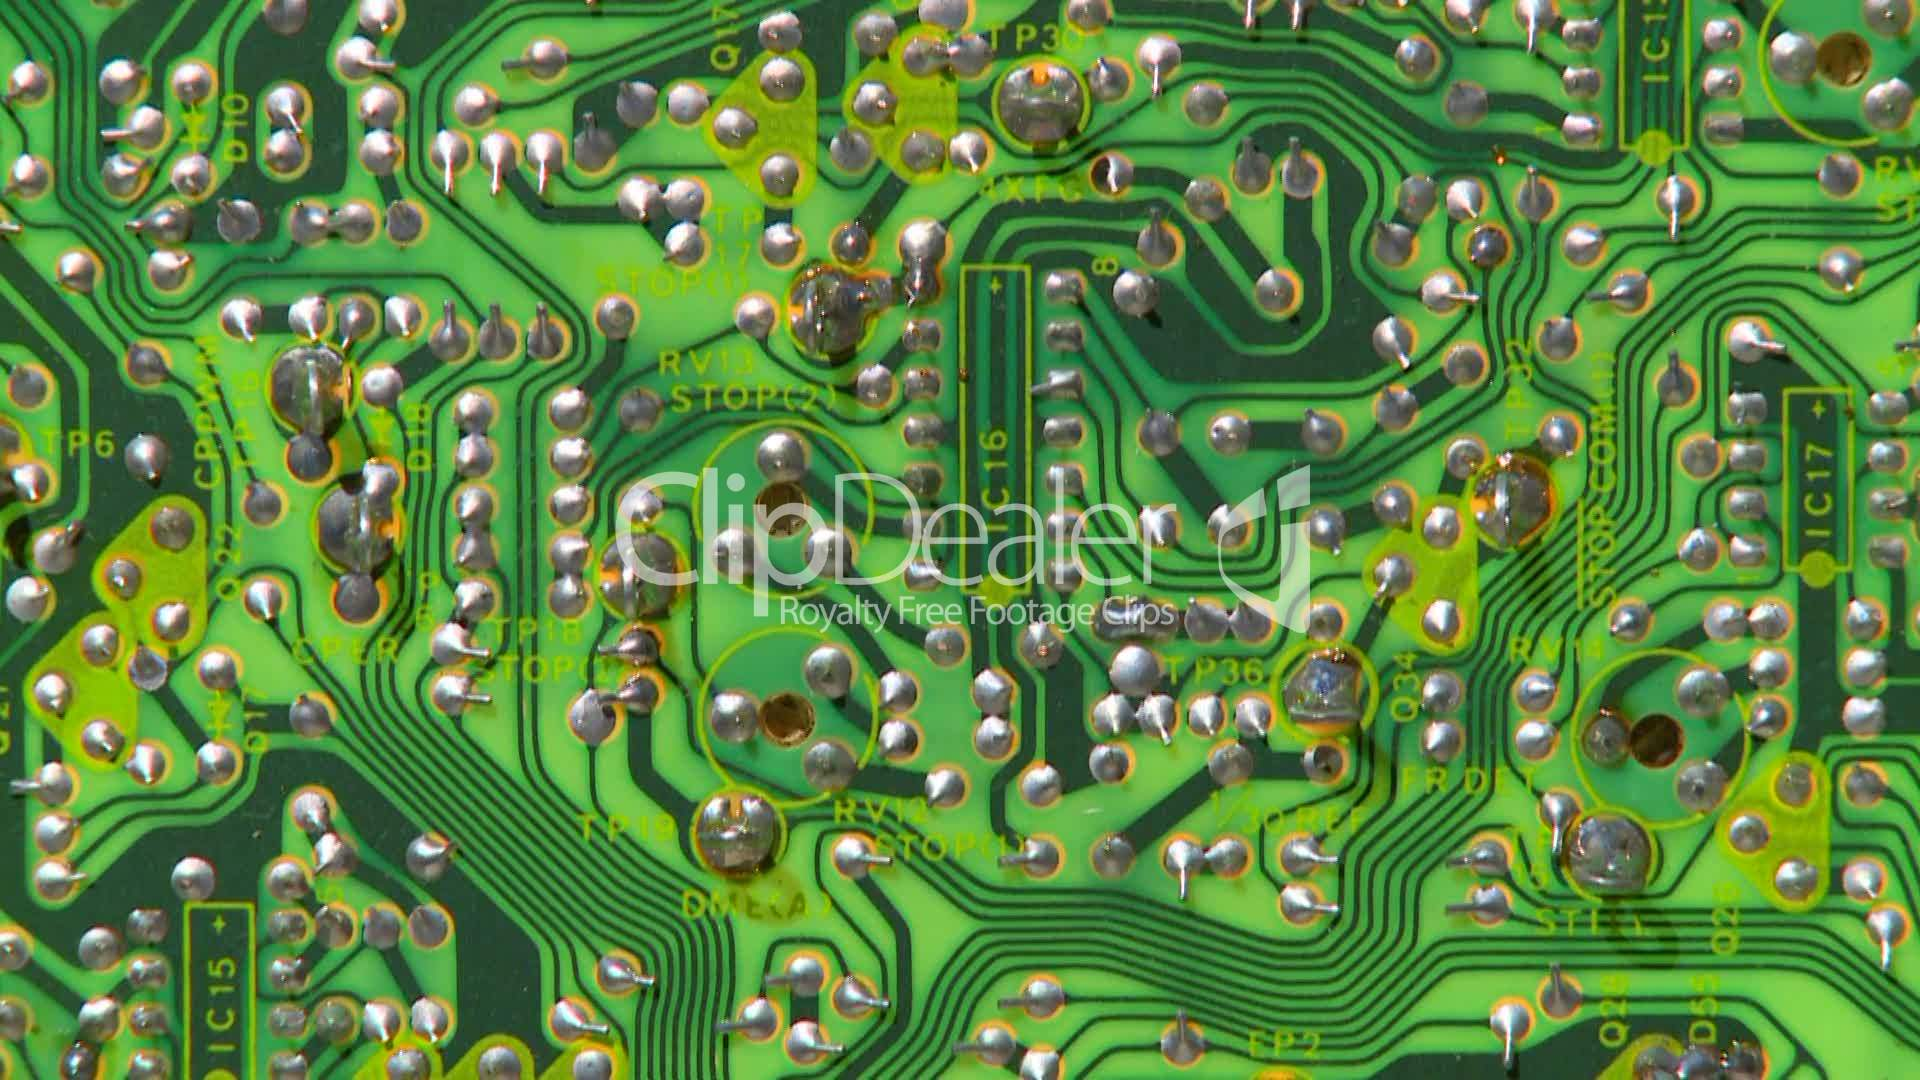 Electronic Circuit Board 10 Royalty Free Video And Stock Footage Electric Circuitry Circuits Communication Components Computer Connections Digital Diode